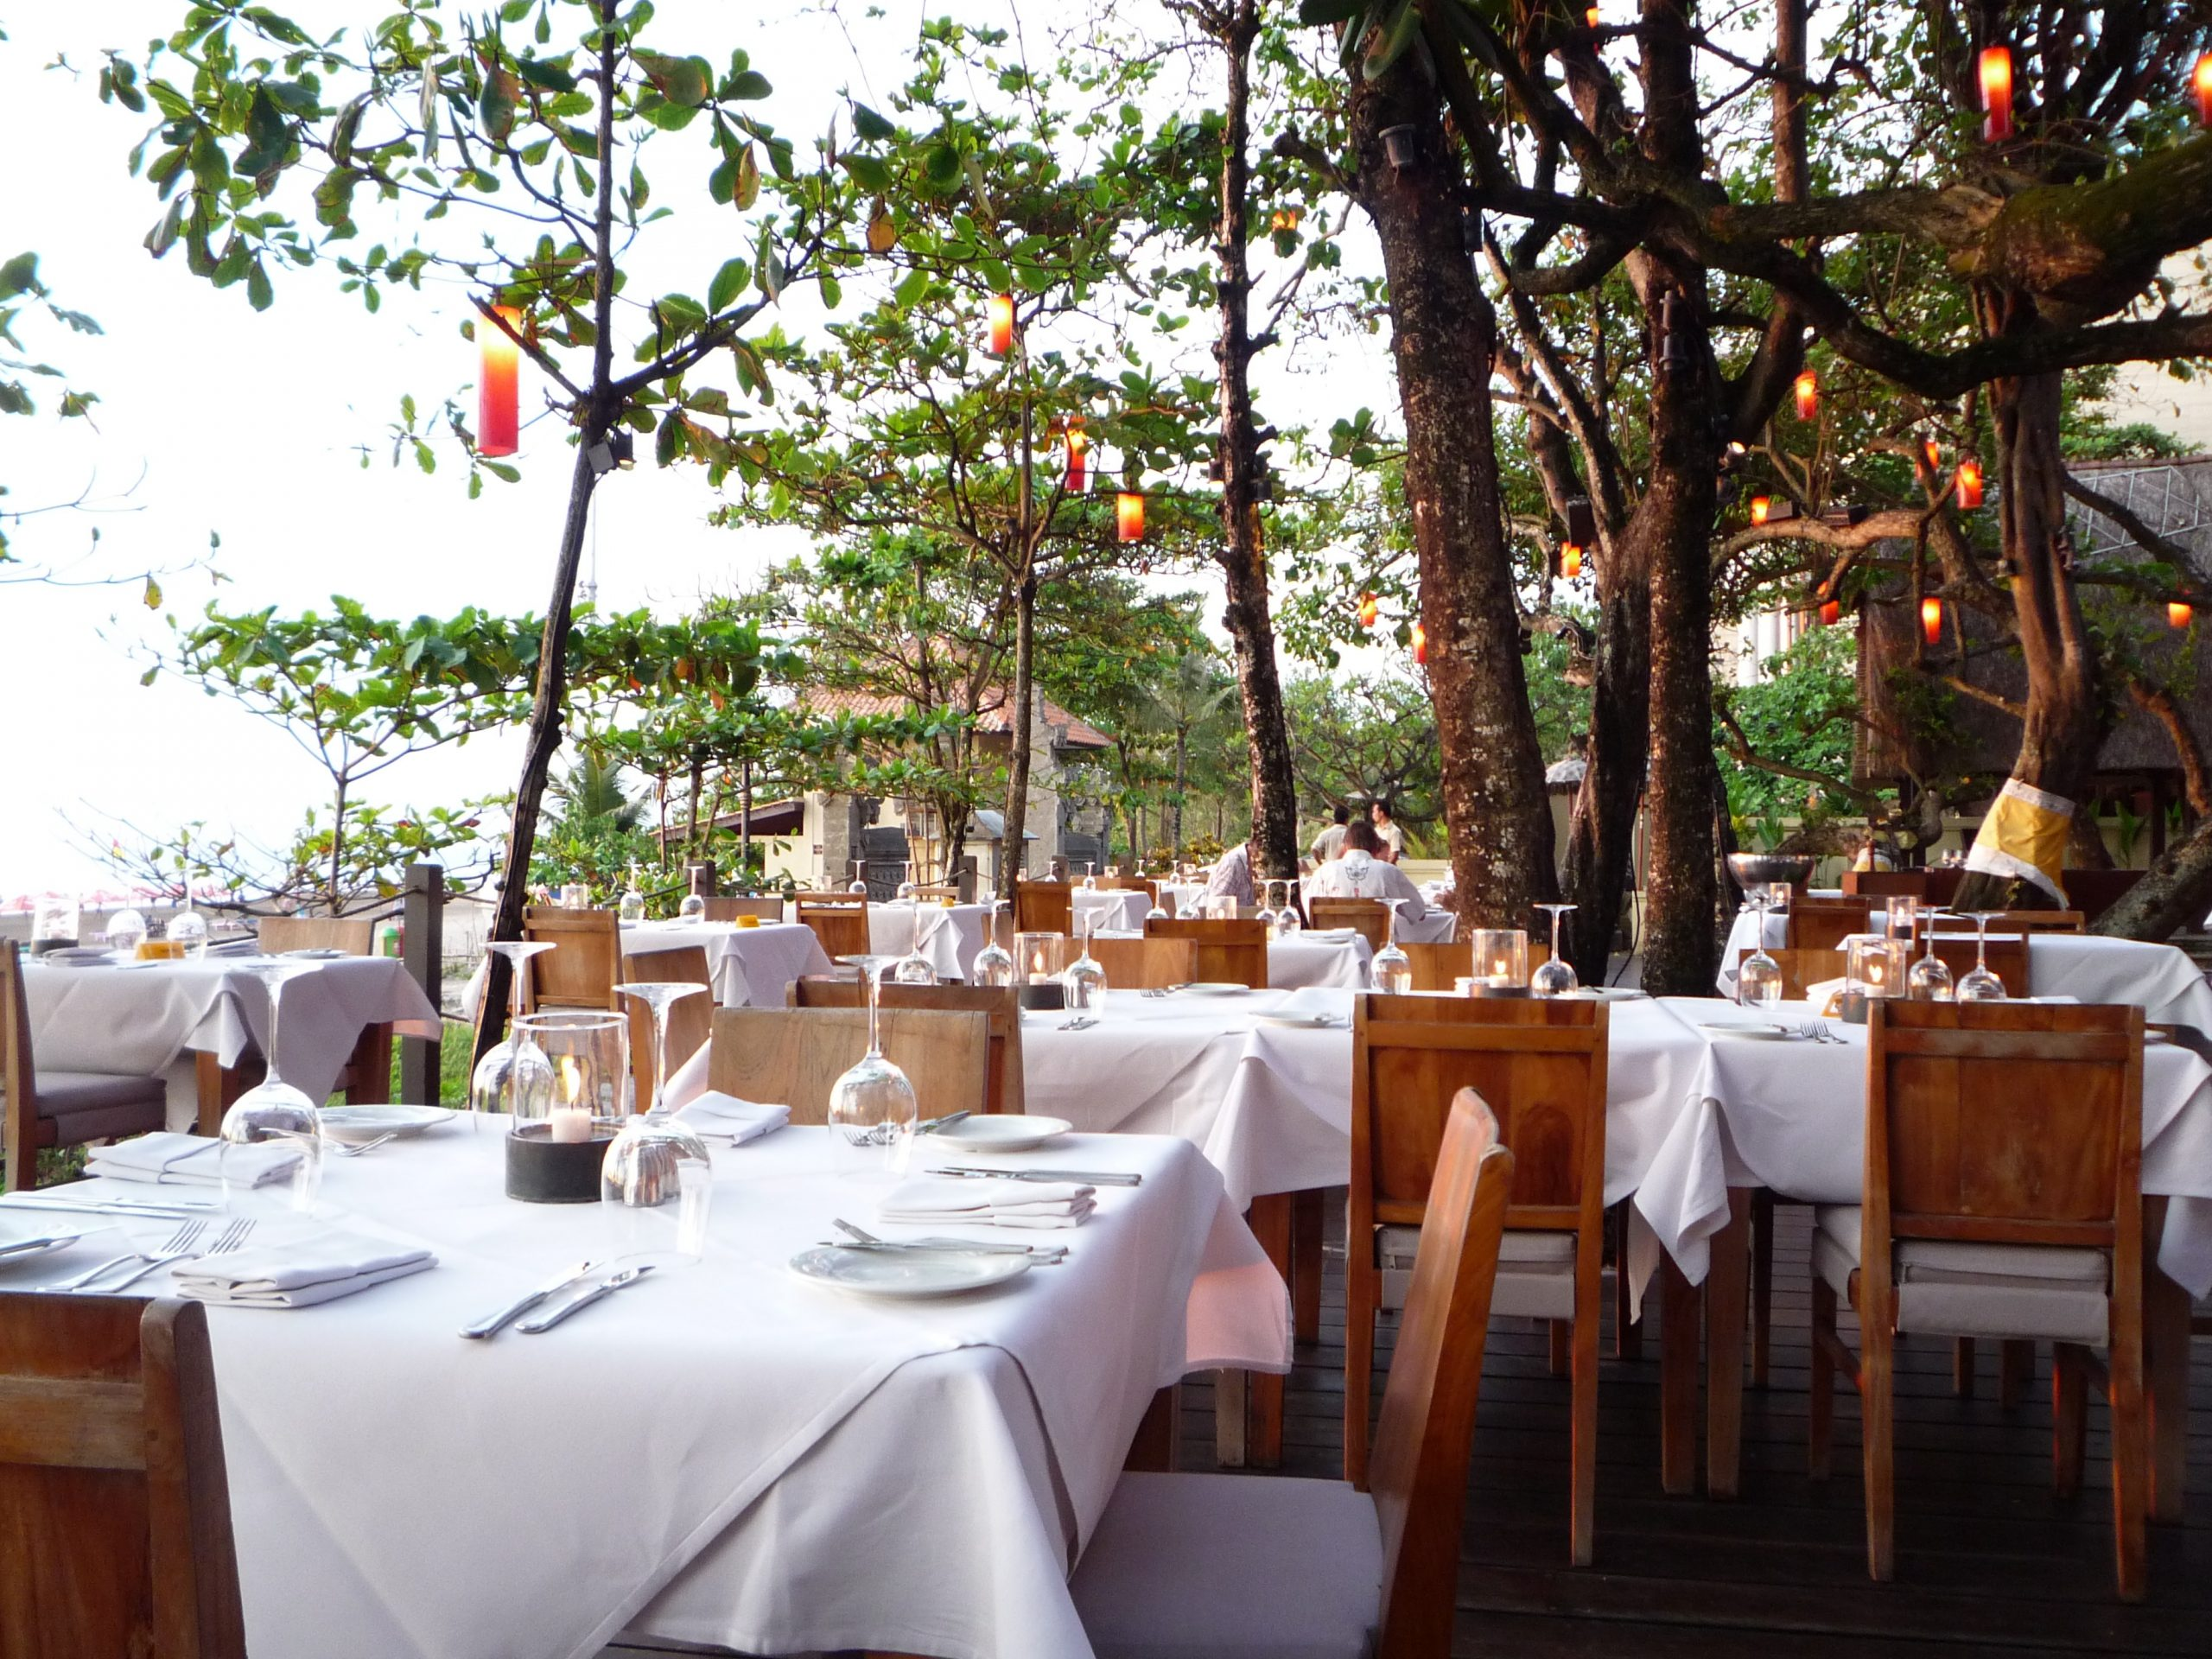 restaurant-meal-wedding-banquet-indonesia-bali-1110579-pxhere.com